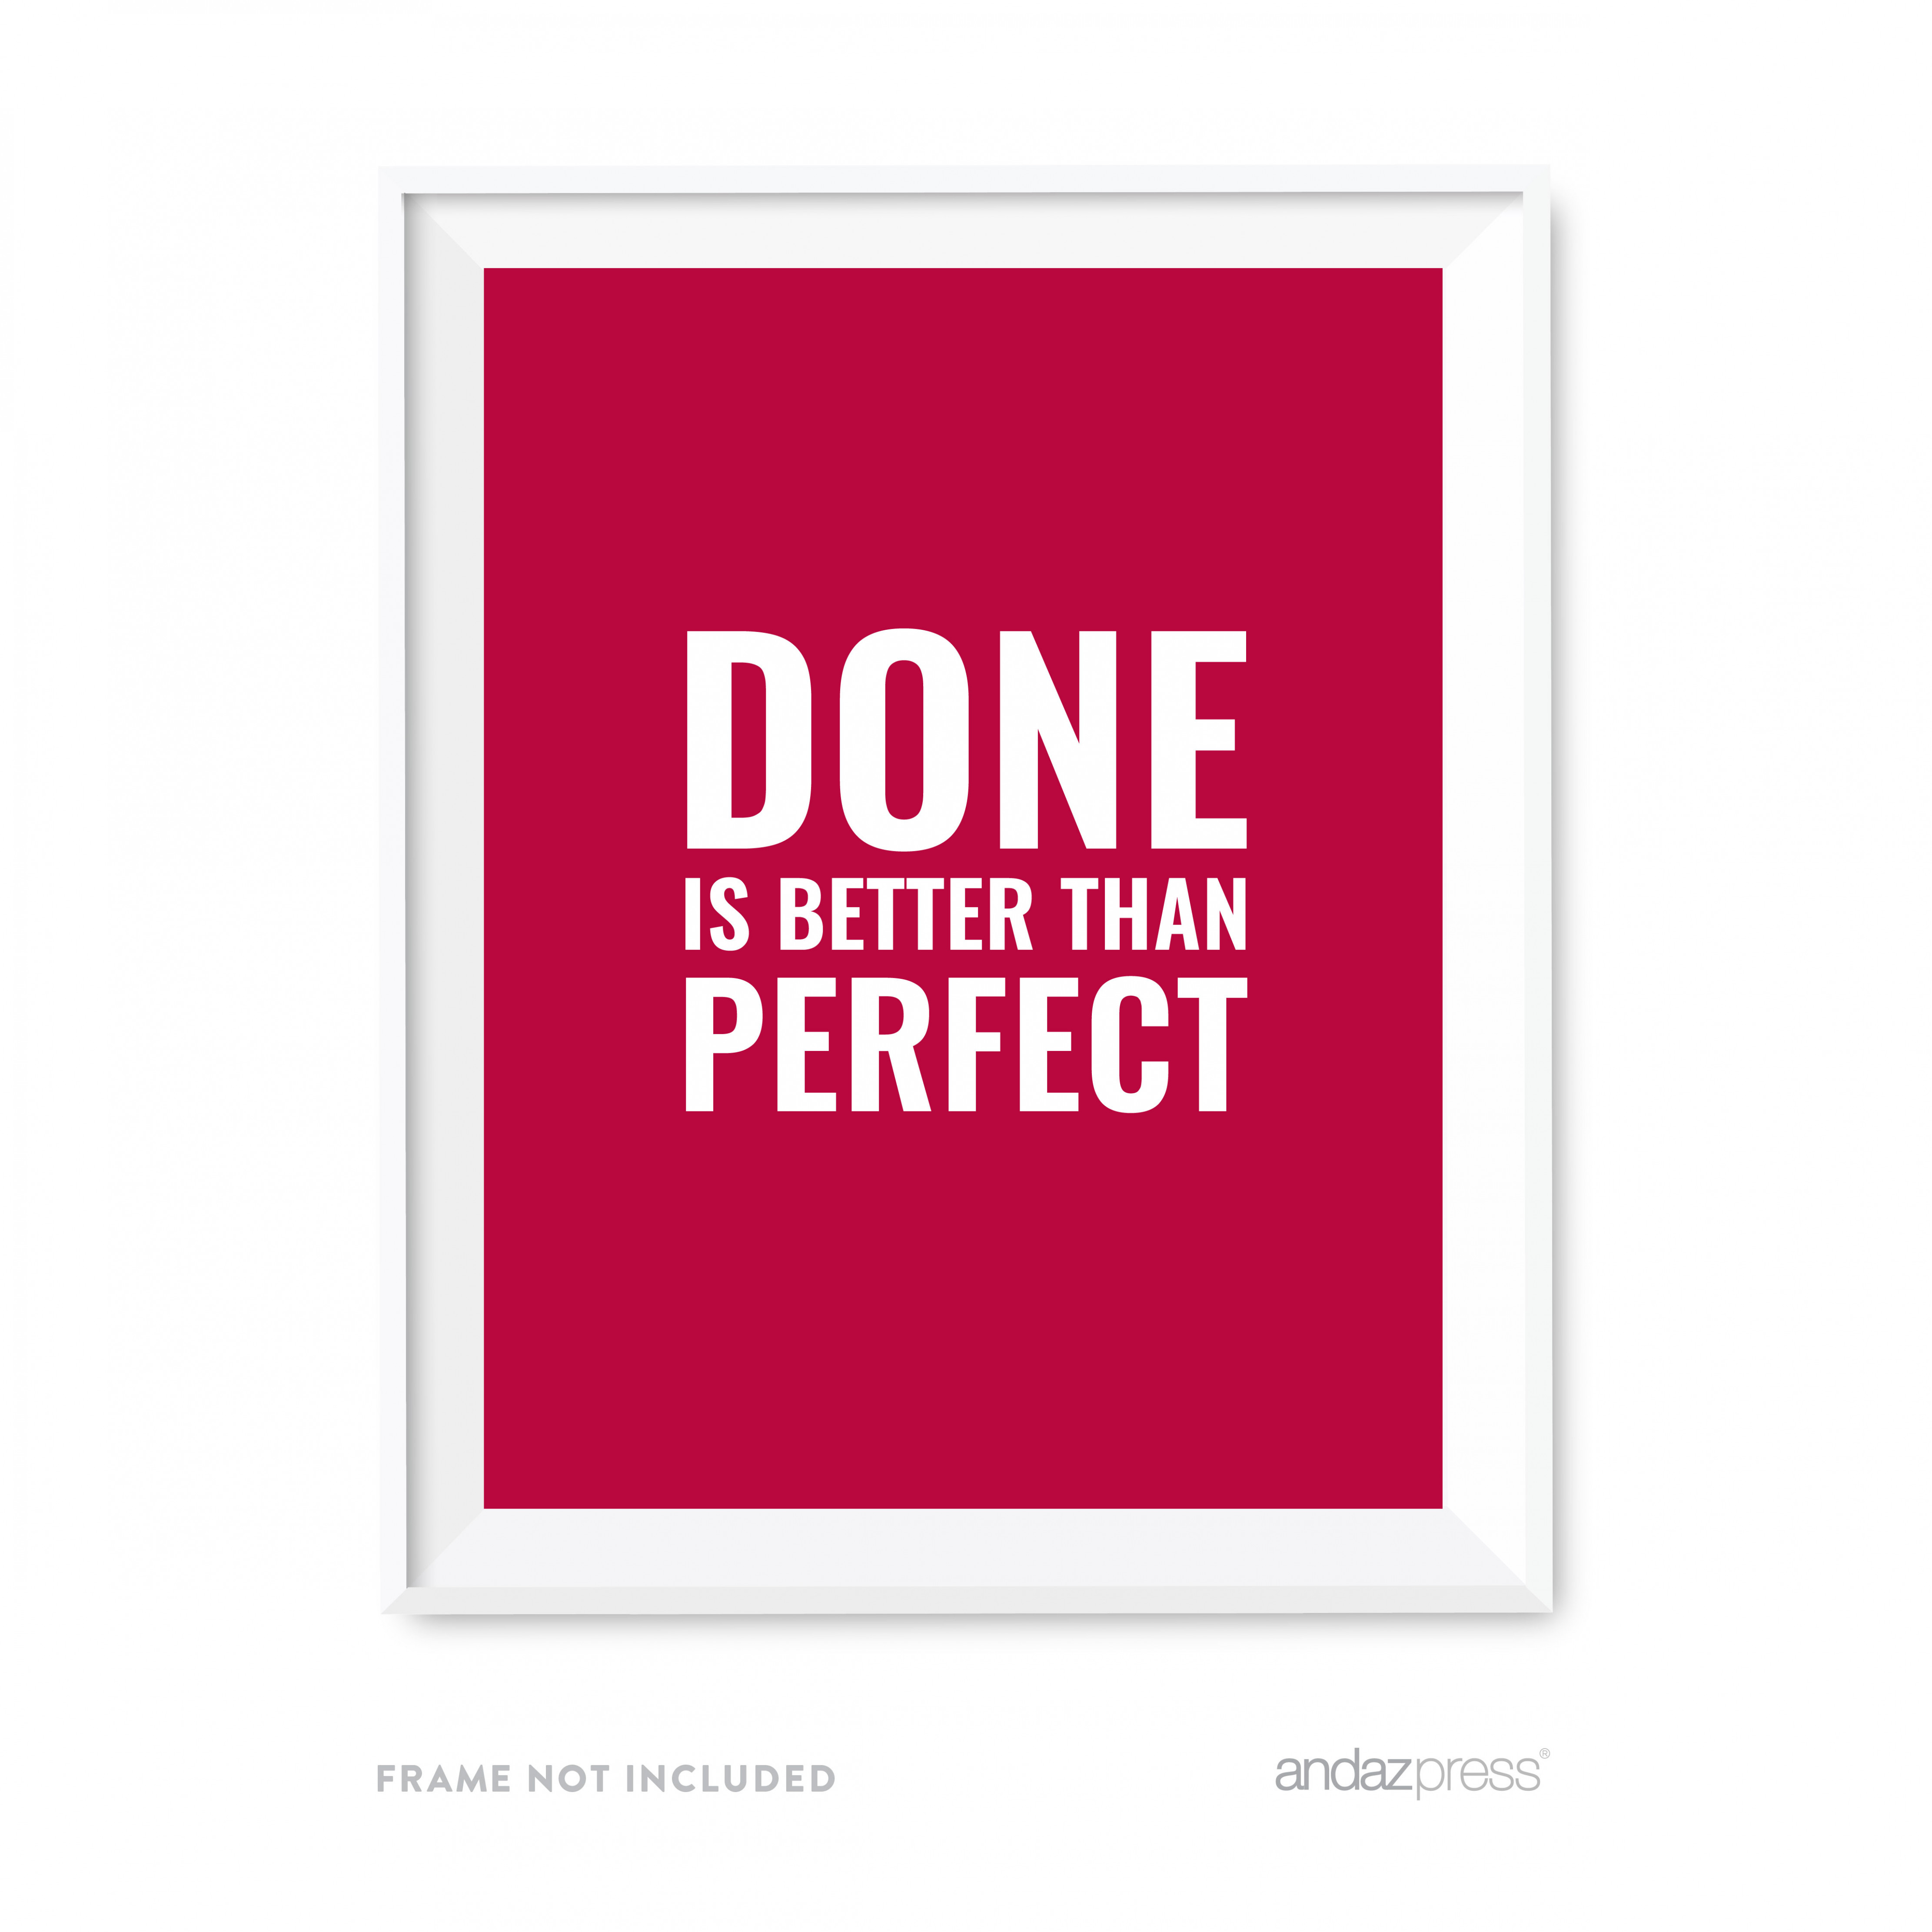 Done Is Better Than Perfect Motivational Wall Art, Inspirational Quotes For Home Office Carports Minimalist Quotes